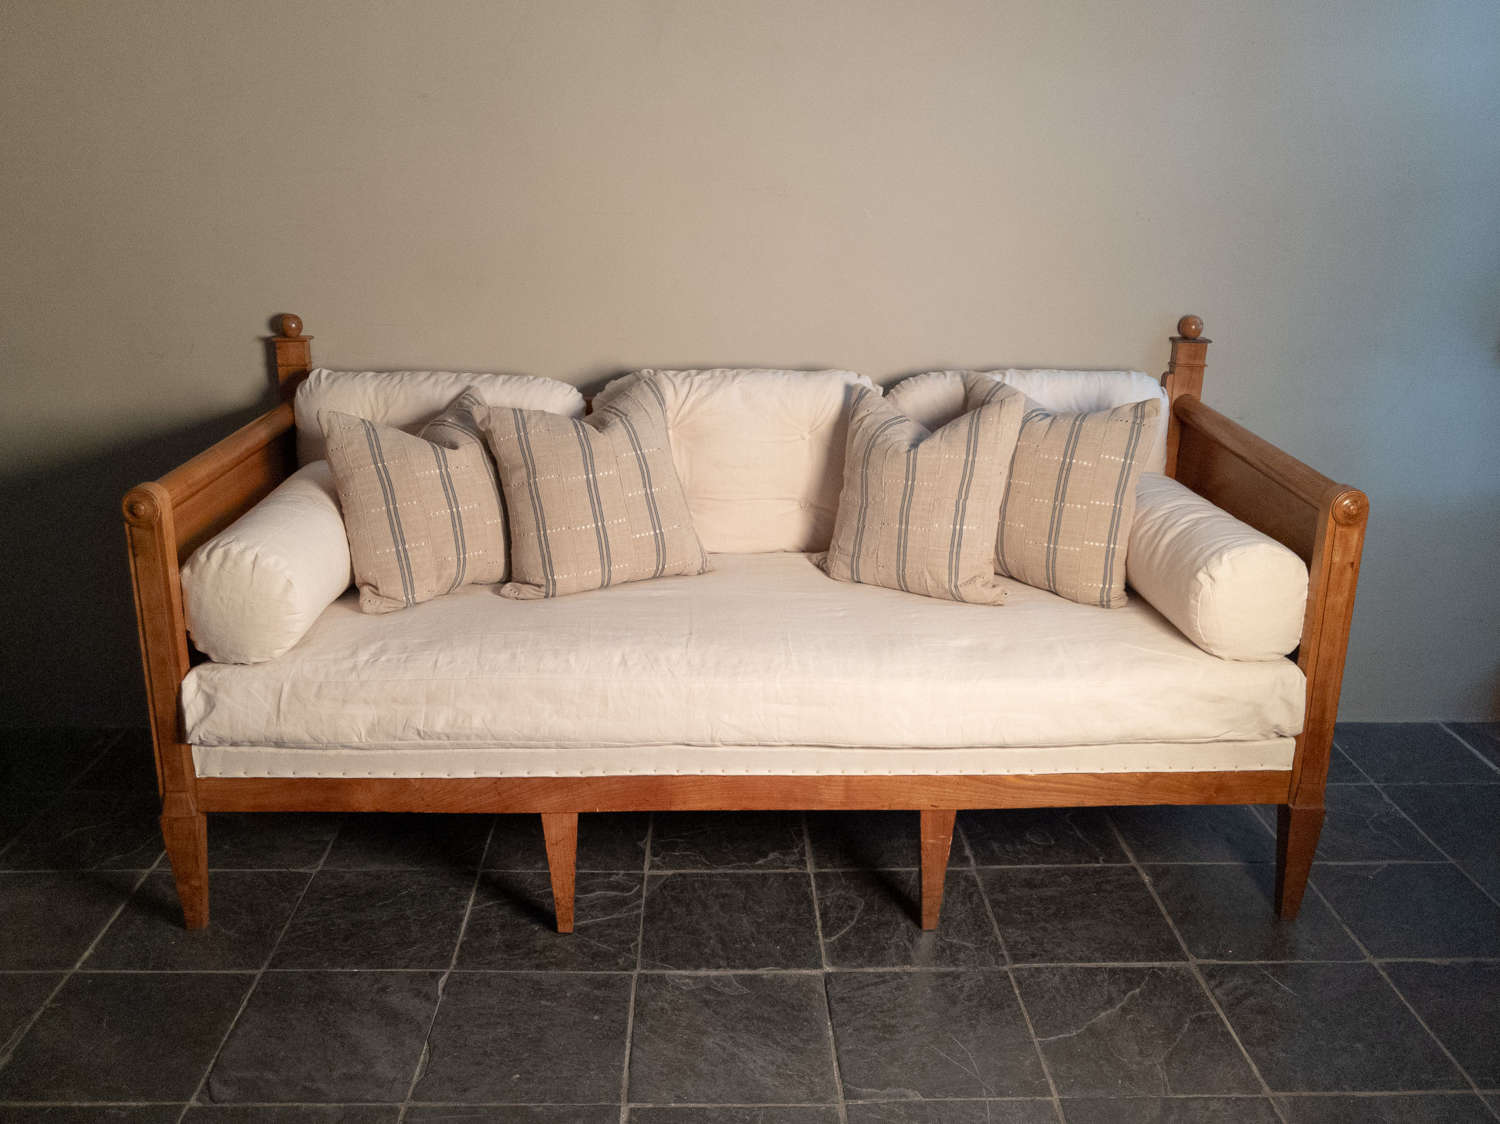 An Early 19th Century French Fruitwood Daybed Sofa